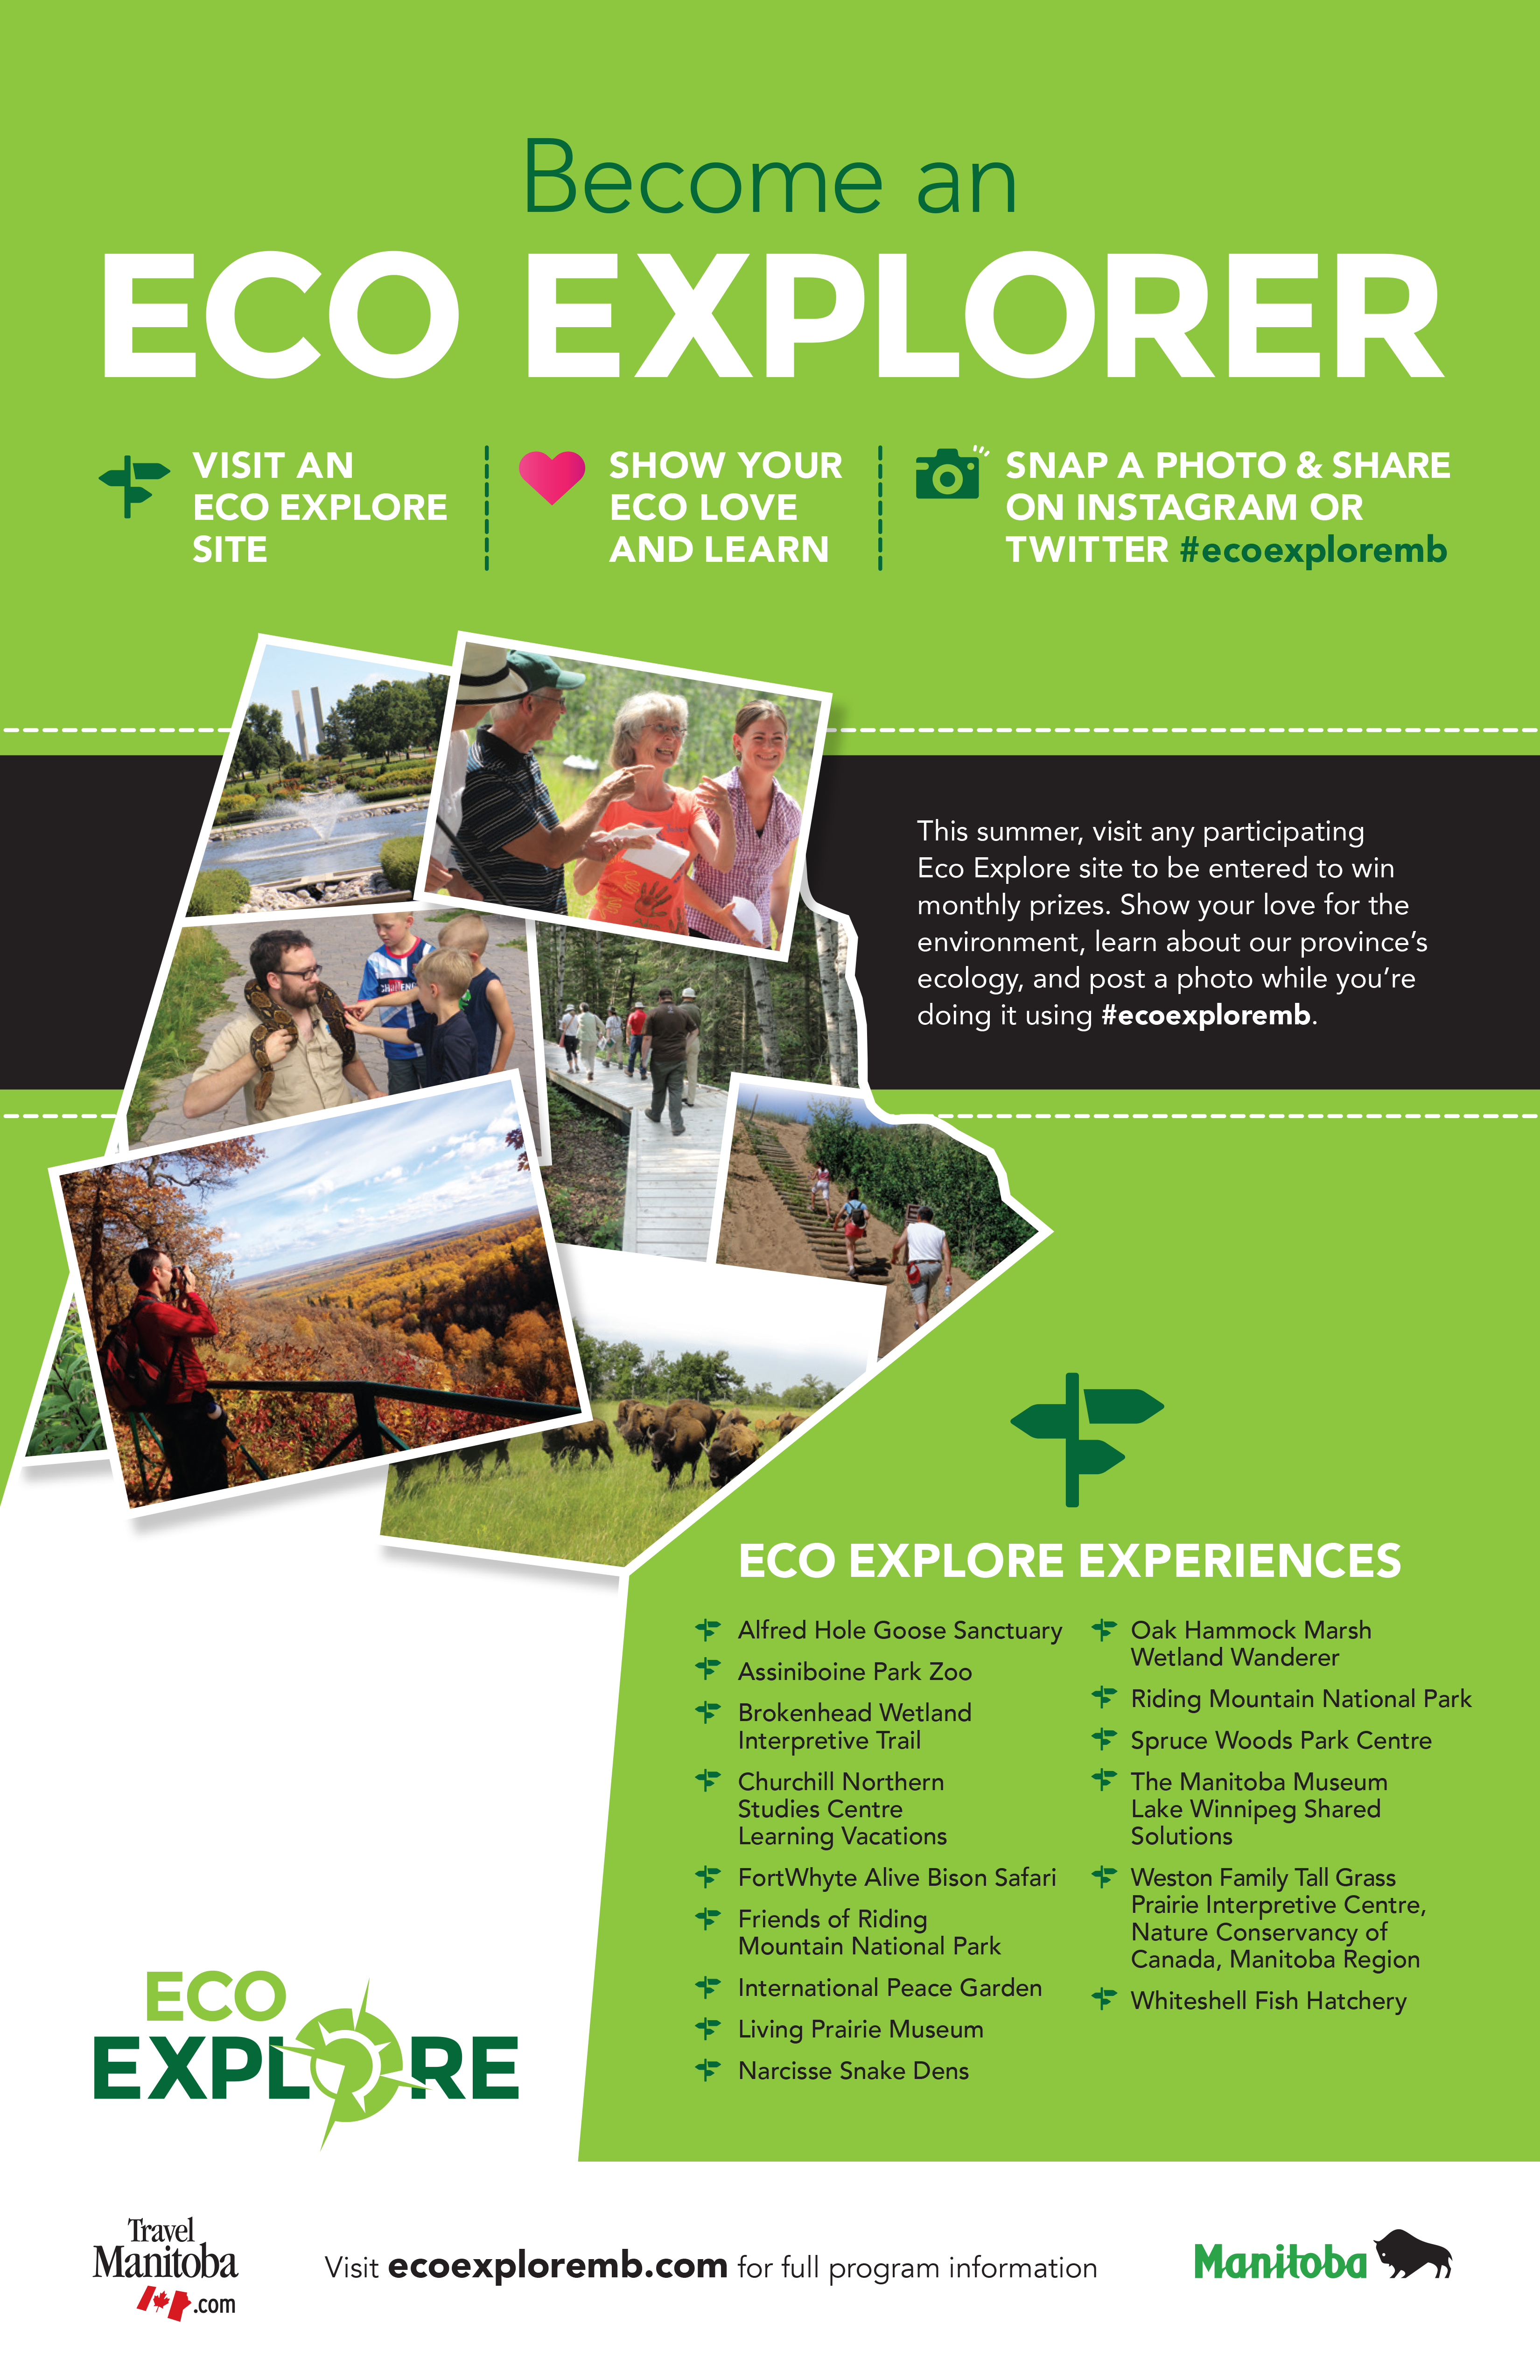 EcoExploreMB Program in Manitoba